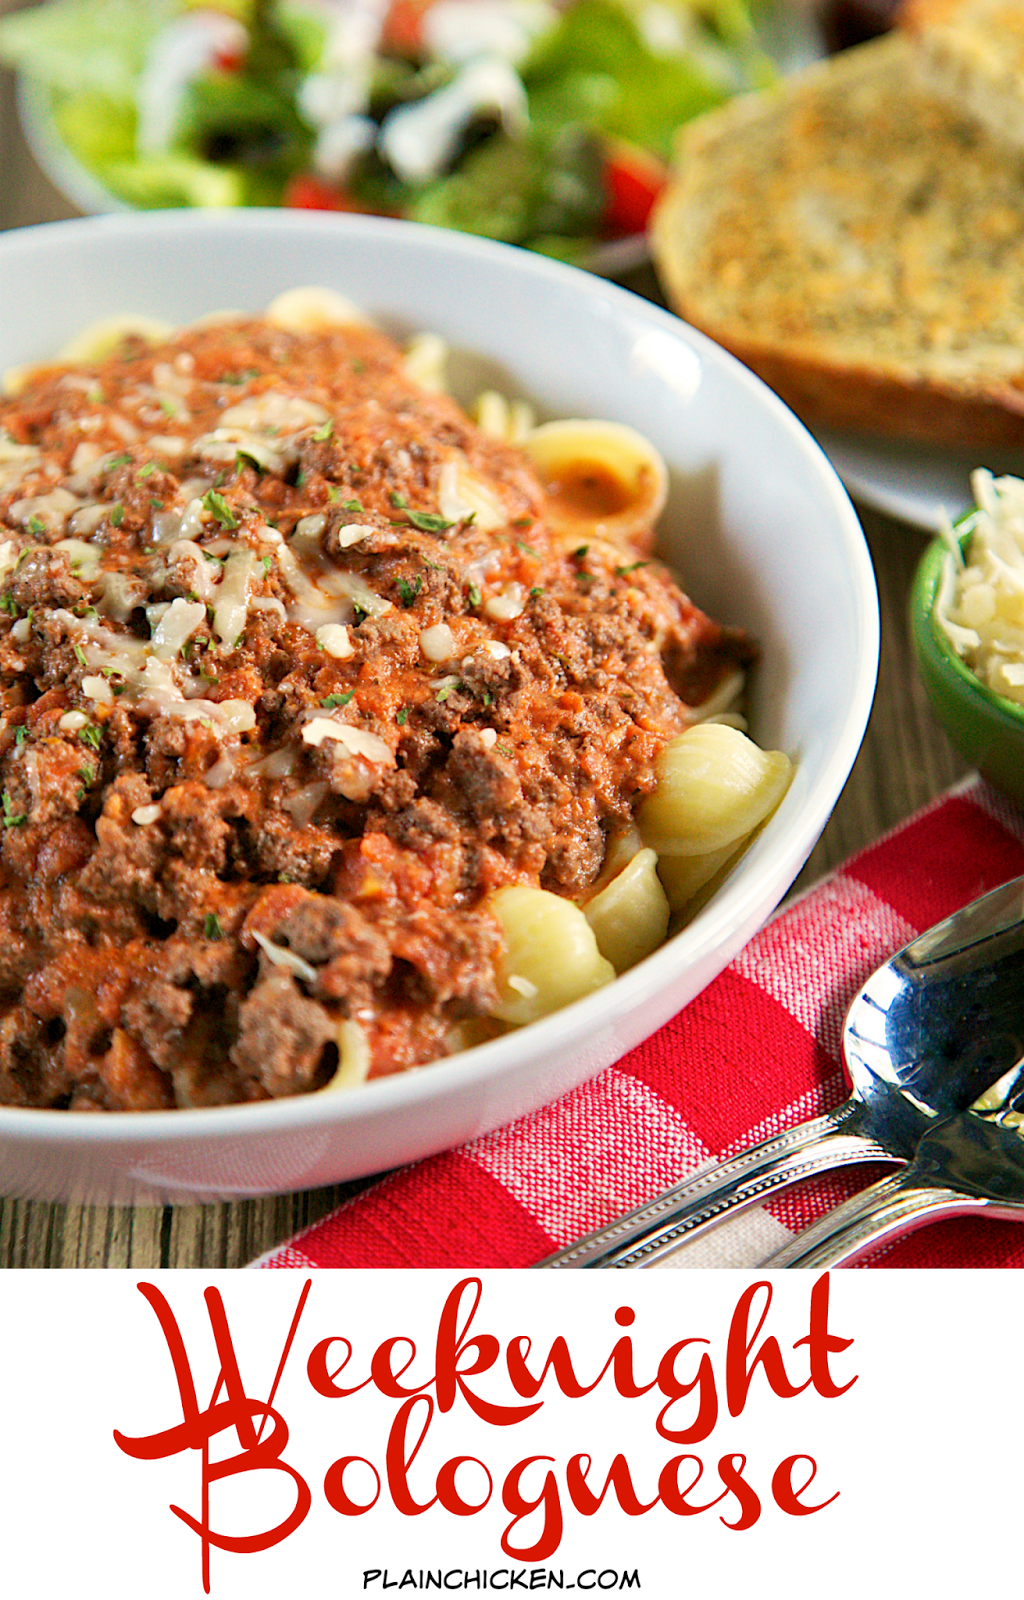 Weeknight Bolognese - from scratch bolognese sauce made in under 30 minutes! Beef, garlic, seasonings, tomatoes, tomato paste, red wine, cream and parmesan. Tastes like it has simmered on the stove all day. This has quickly become one of our favorite meals!